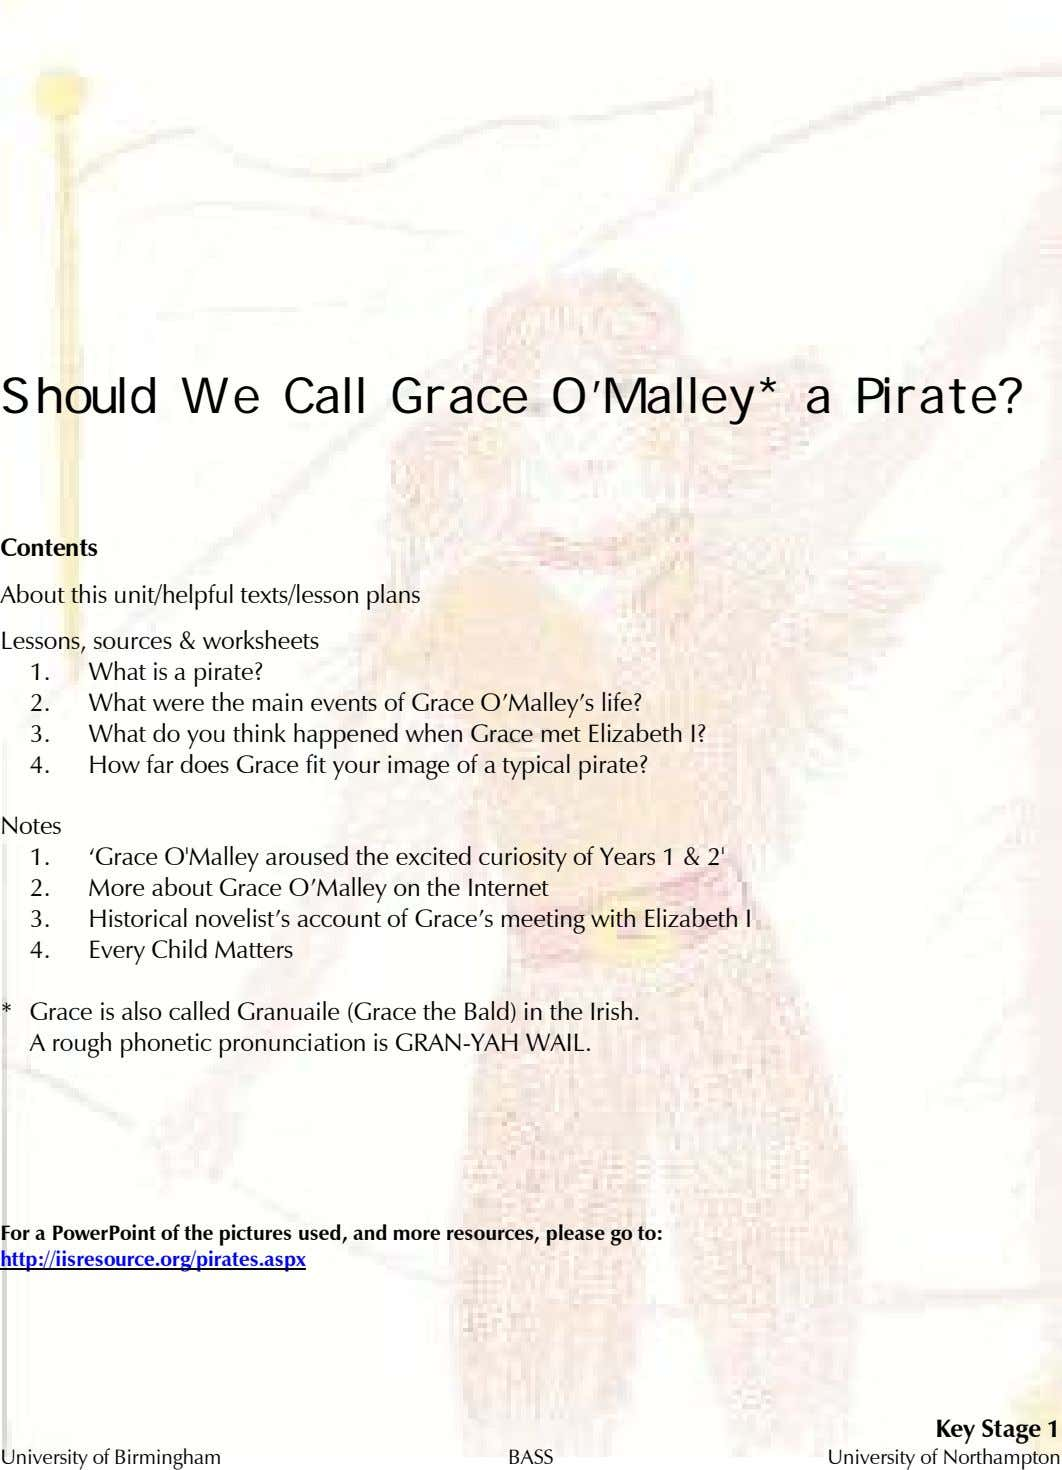 Should We Call Grace O'Malley* a Pirate? Contents About this unit/helpful texts/lesson plans Lessons, sources